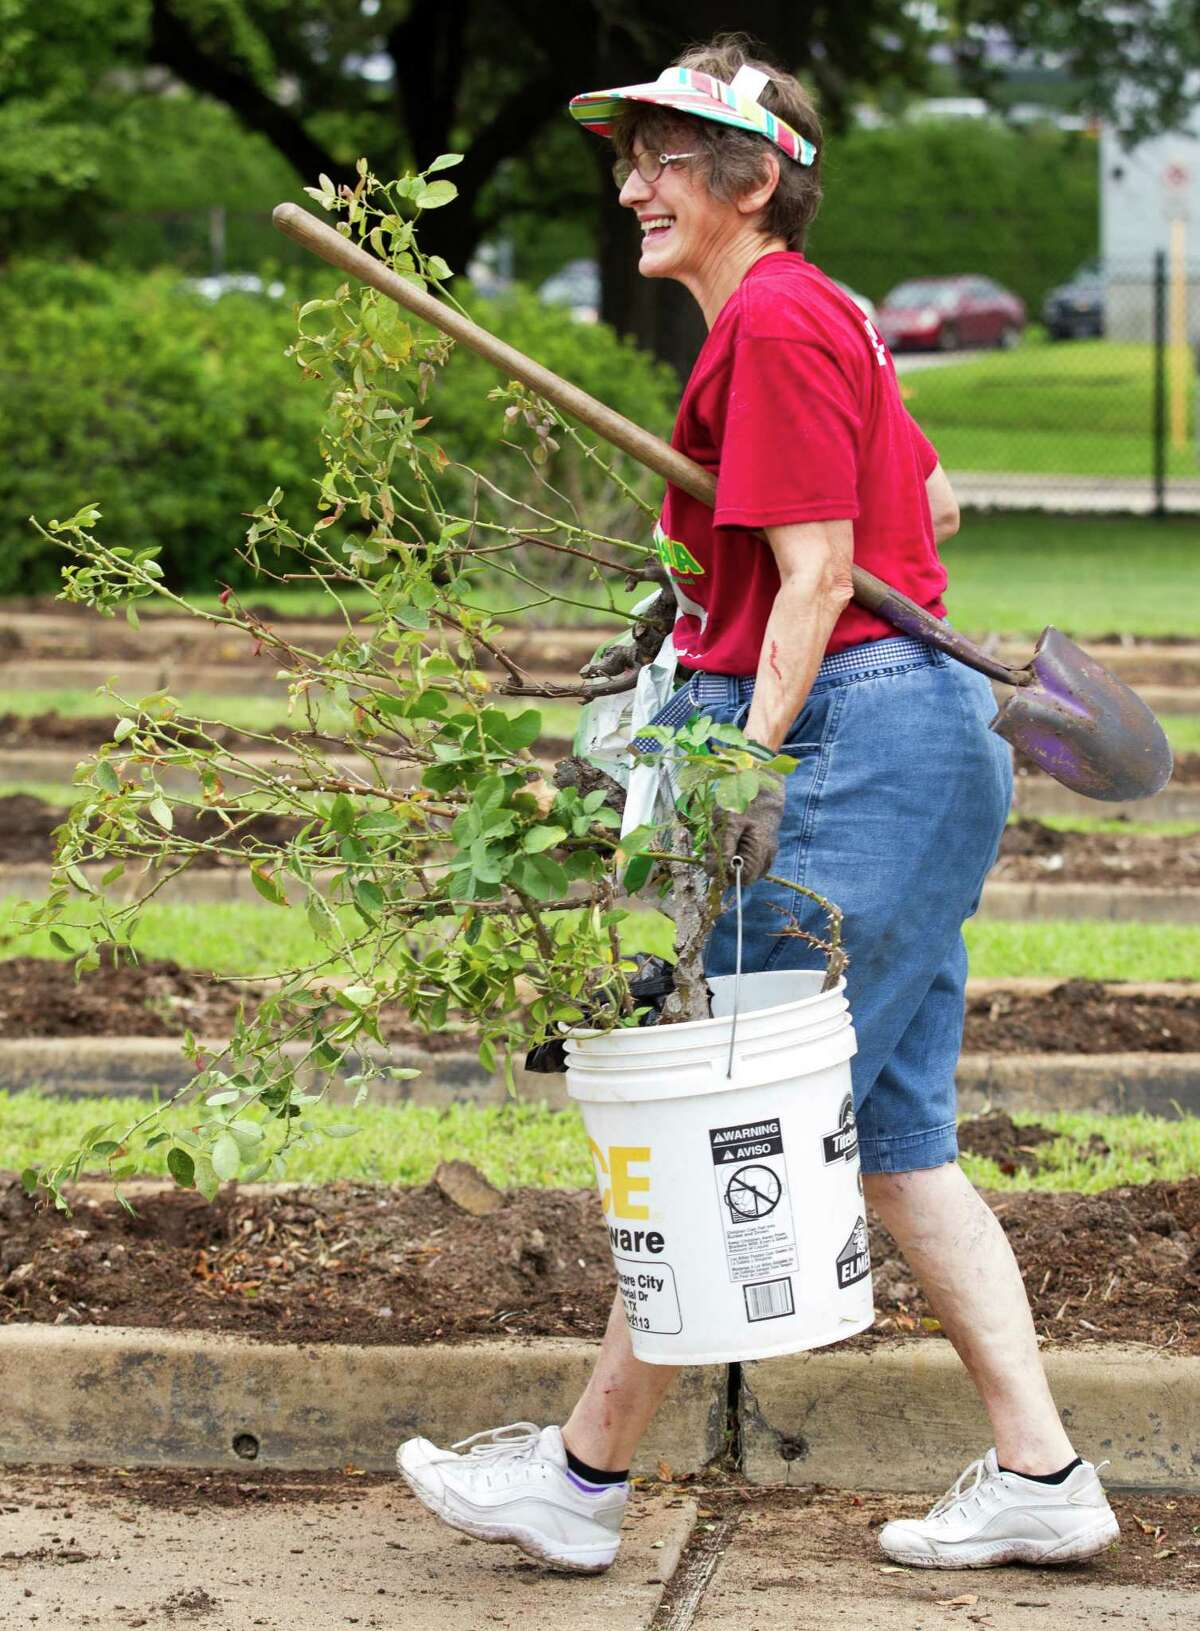 Elizabeth Davies carries her shovel and roses while collecting plants at the Houston Garden Center on Saturday, Sept. 7, 2013, in Houston.